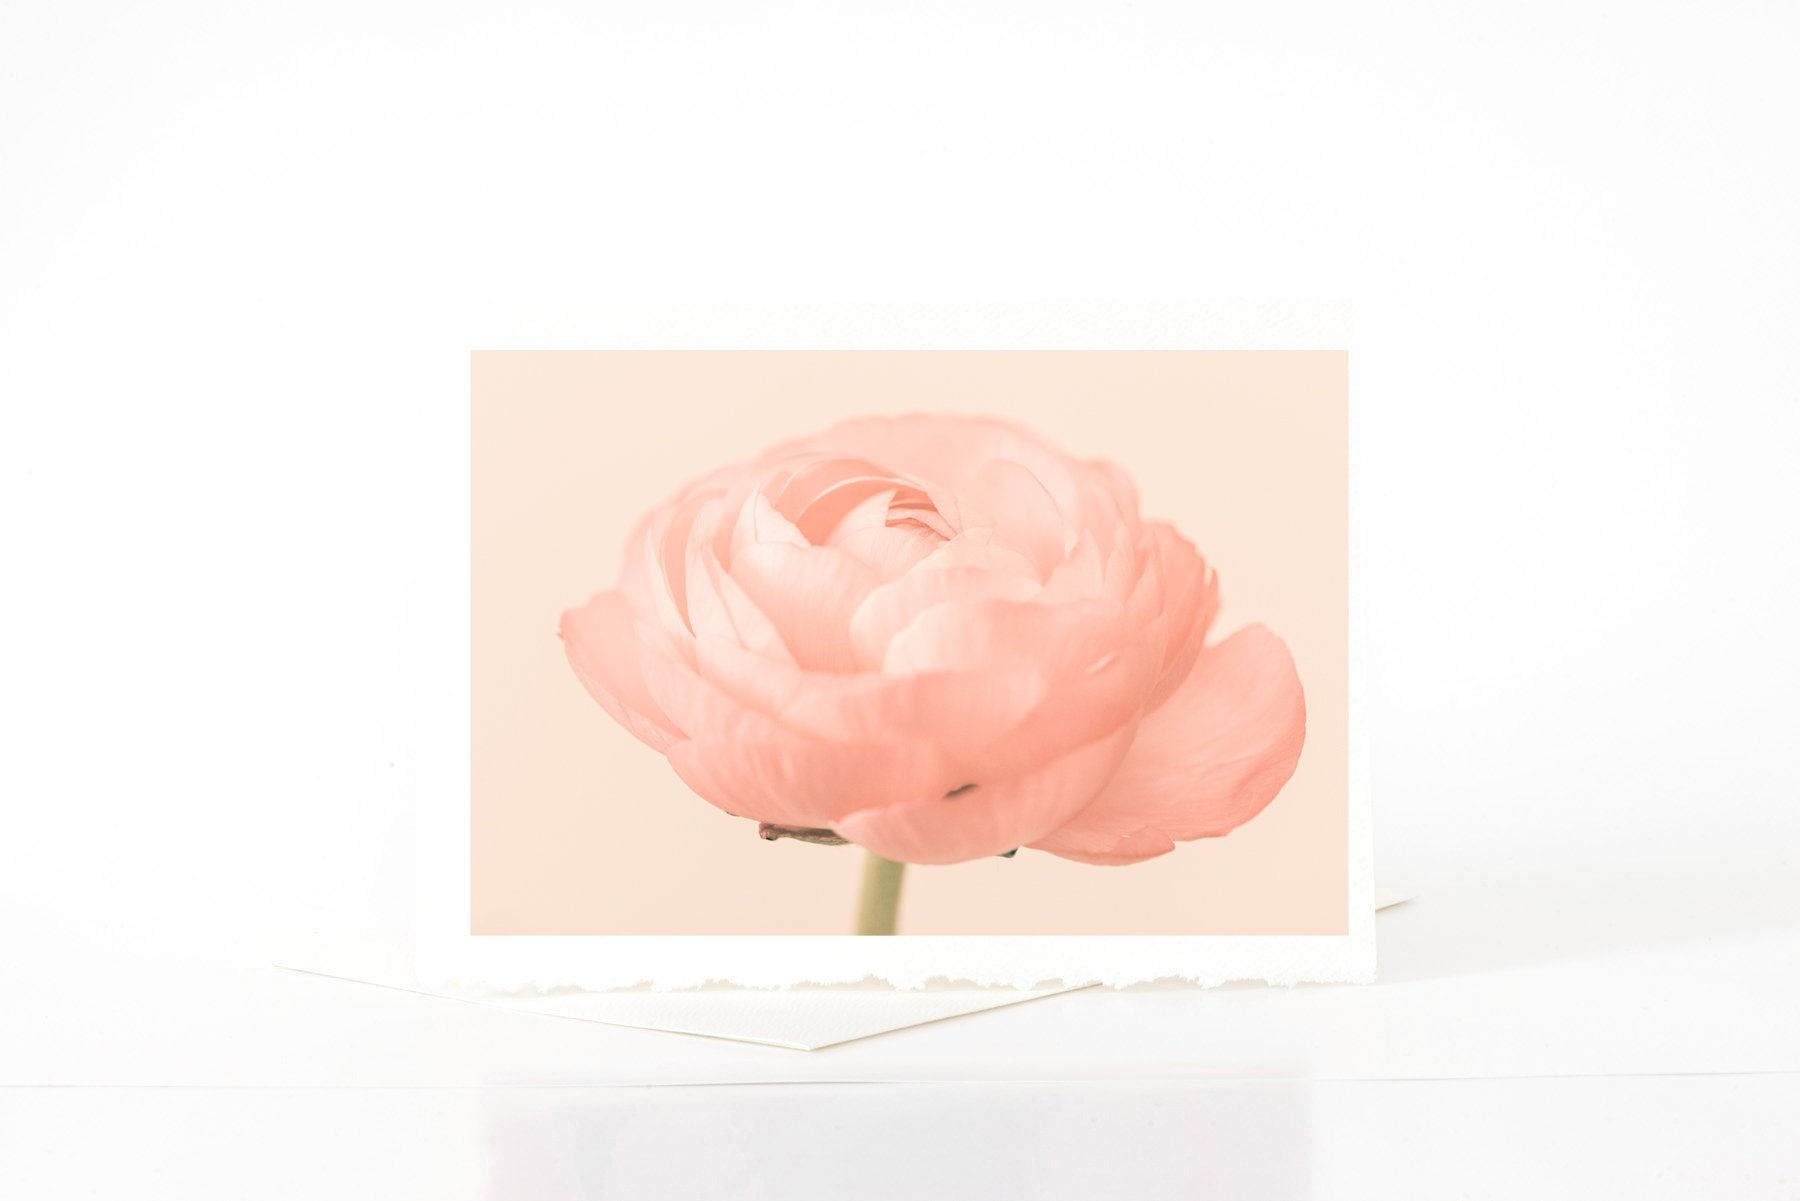 Ranunculus Flower Blank Greeting Card Etsy Handmade Photo Greeting Cards Soft Peach Floral Nature Note Cards Botanical Photo Card Sets In 2020 Photo Greeting Cards Etsy Handmade Flower Cards